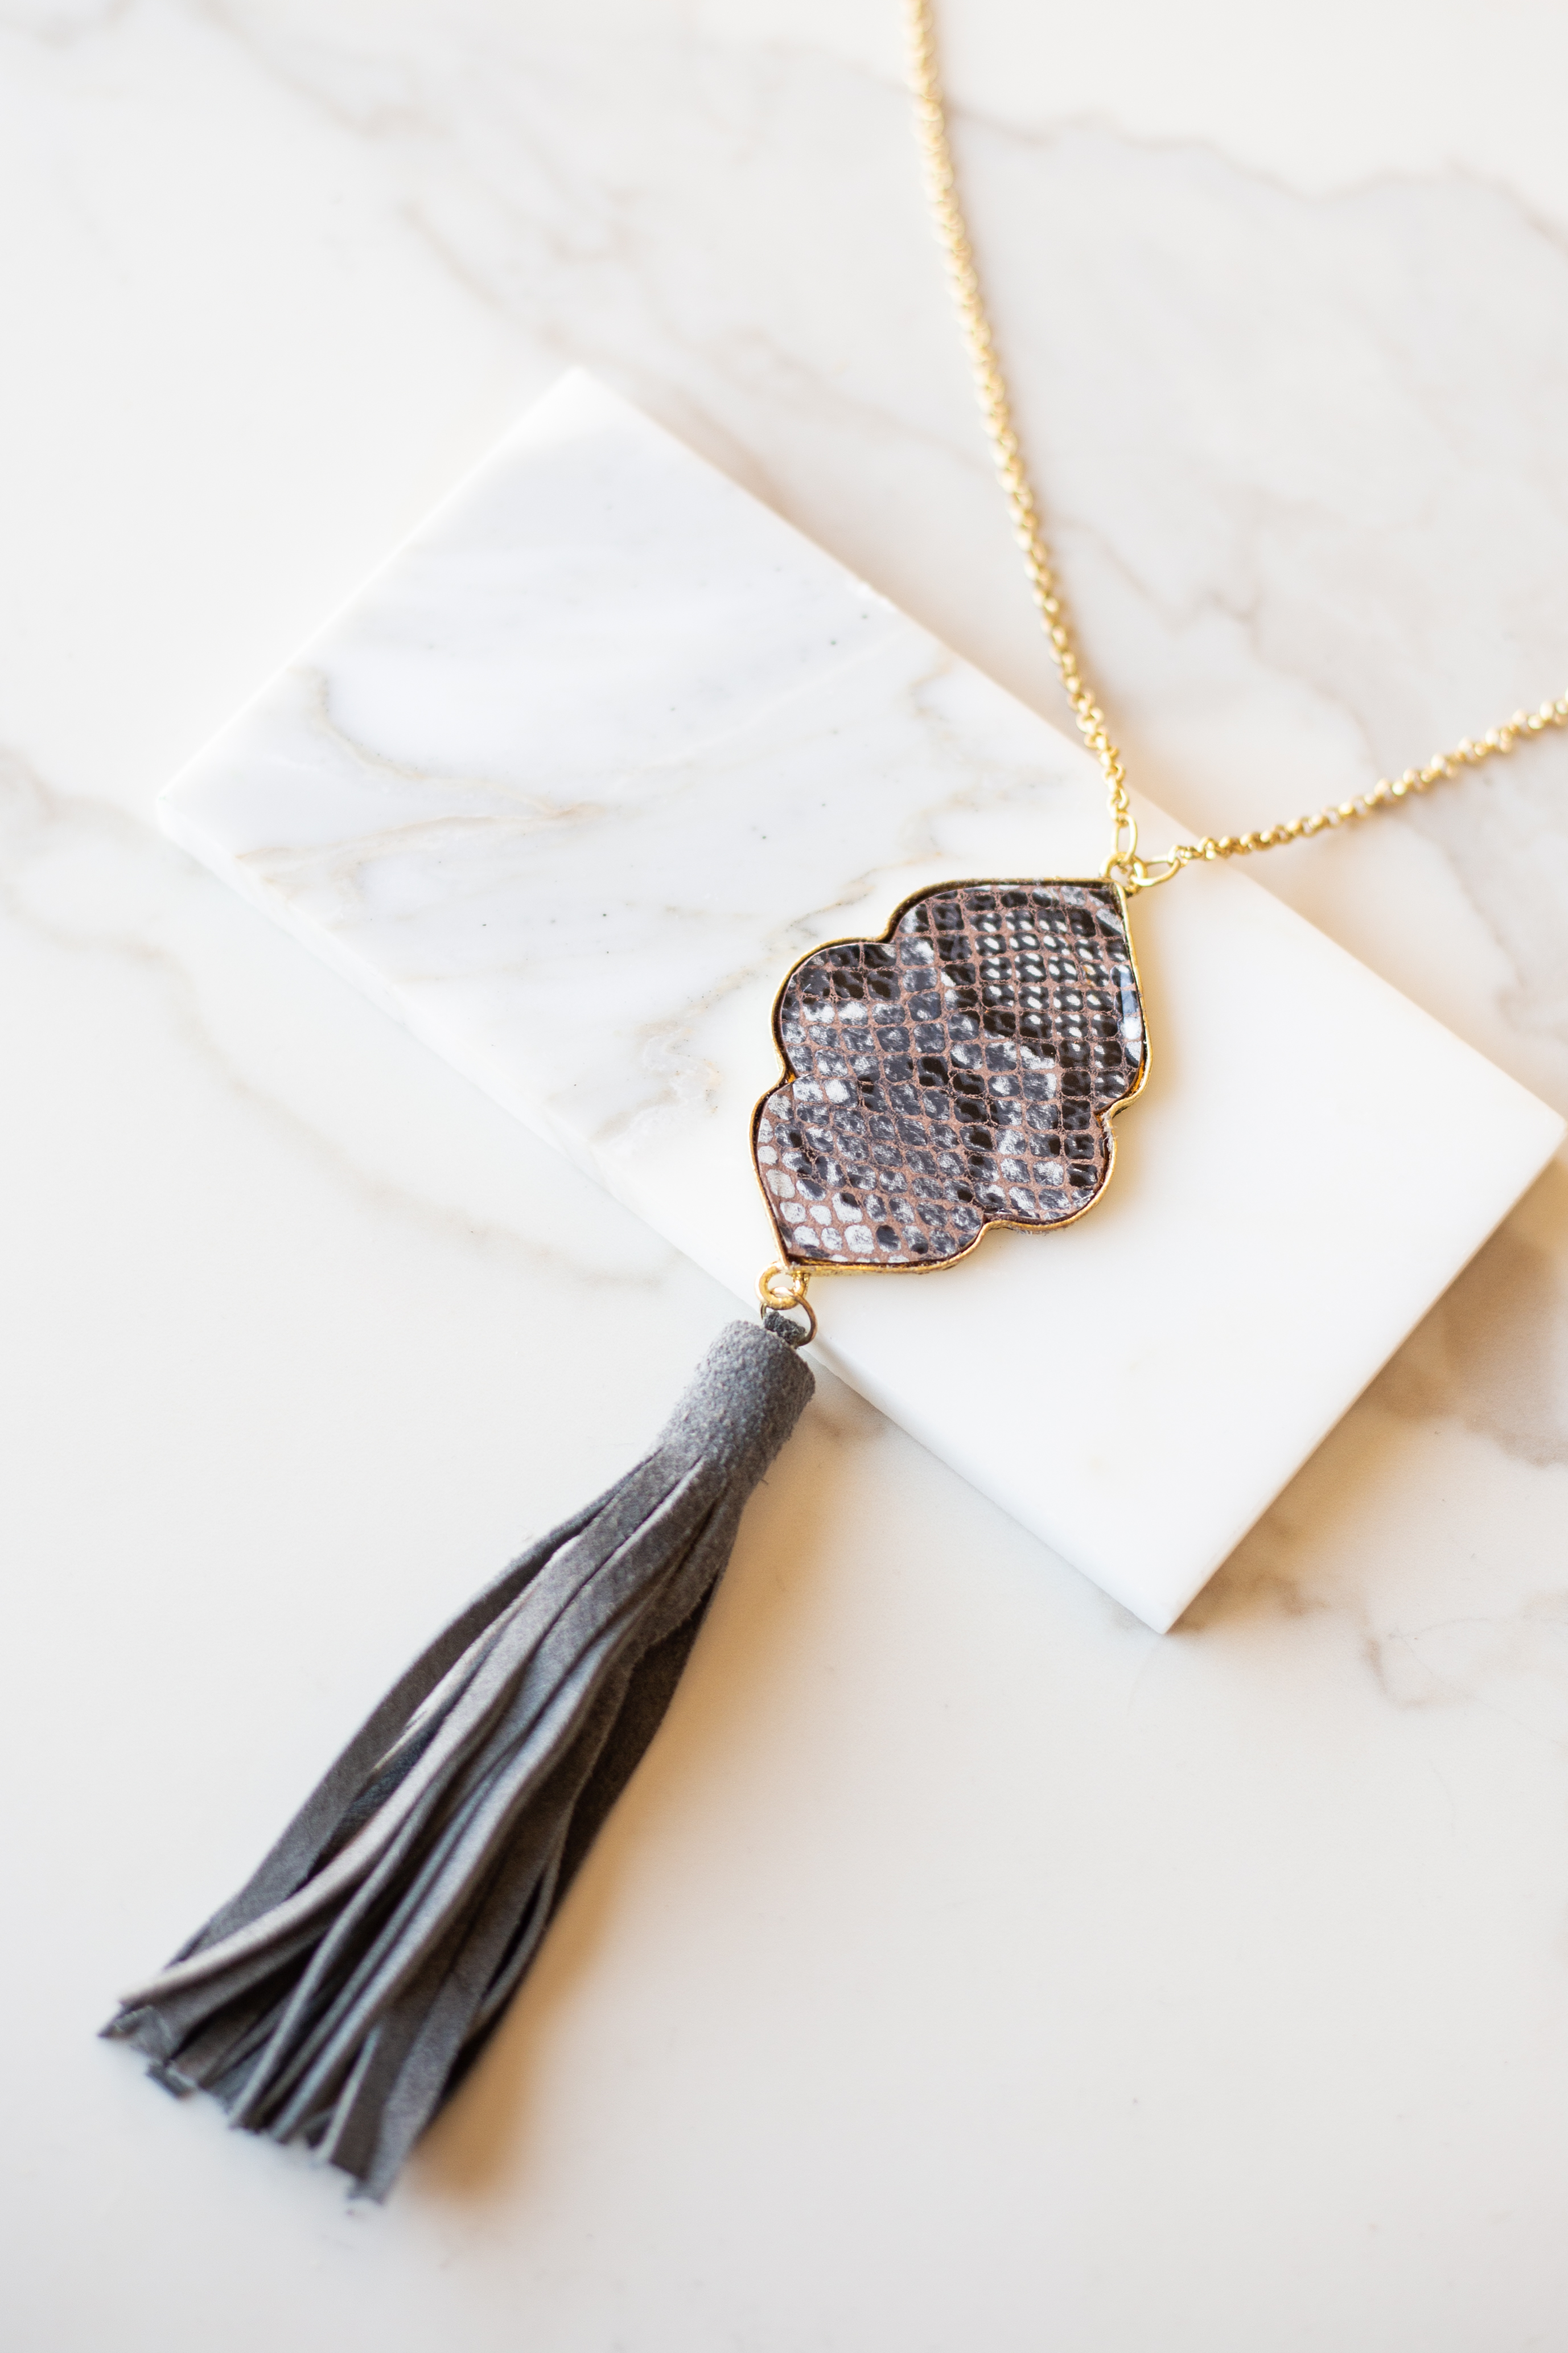 Gold Long Necklace with Snakeskin Print Pendant and Tassel